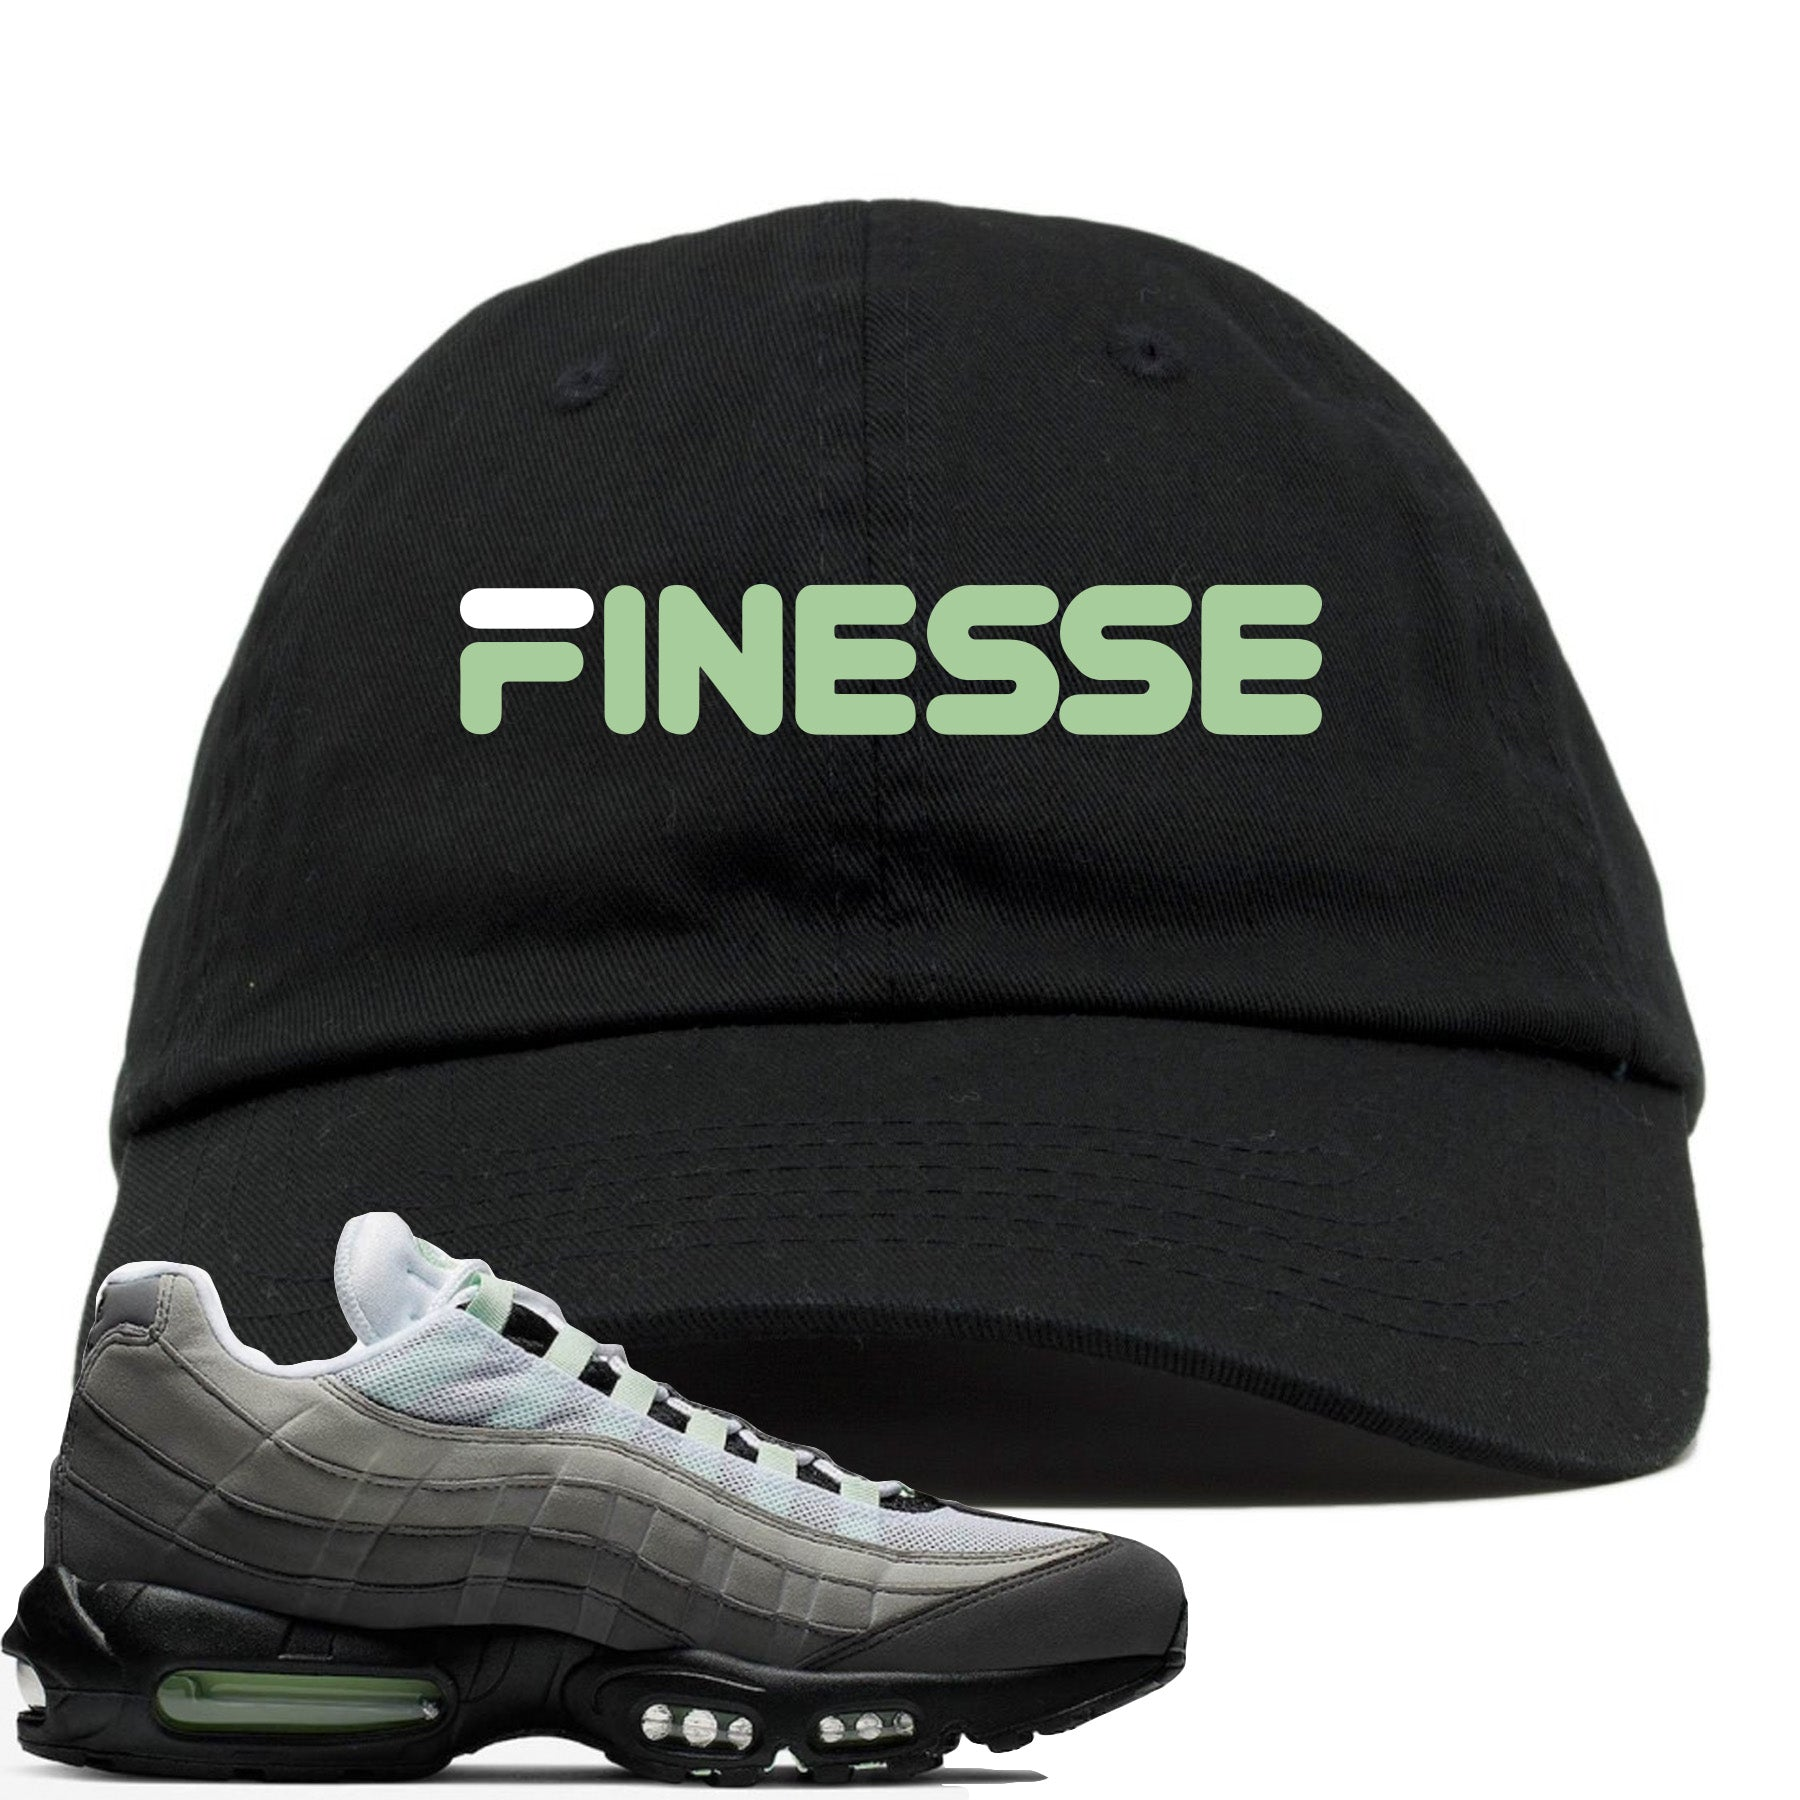 detailed look d0f49 512e1 Nike Air Max 95 Fresh Mint Sneaker Match Finesse Black Dad Hat